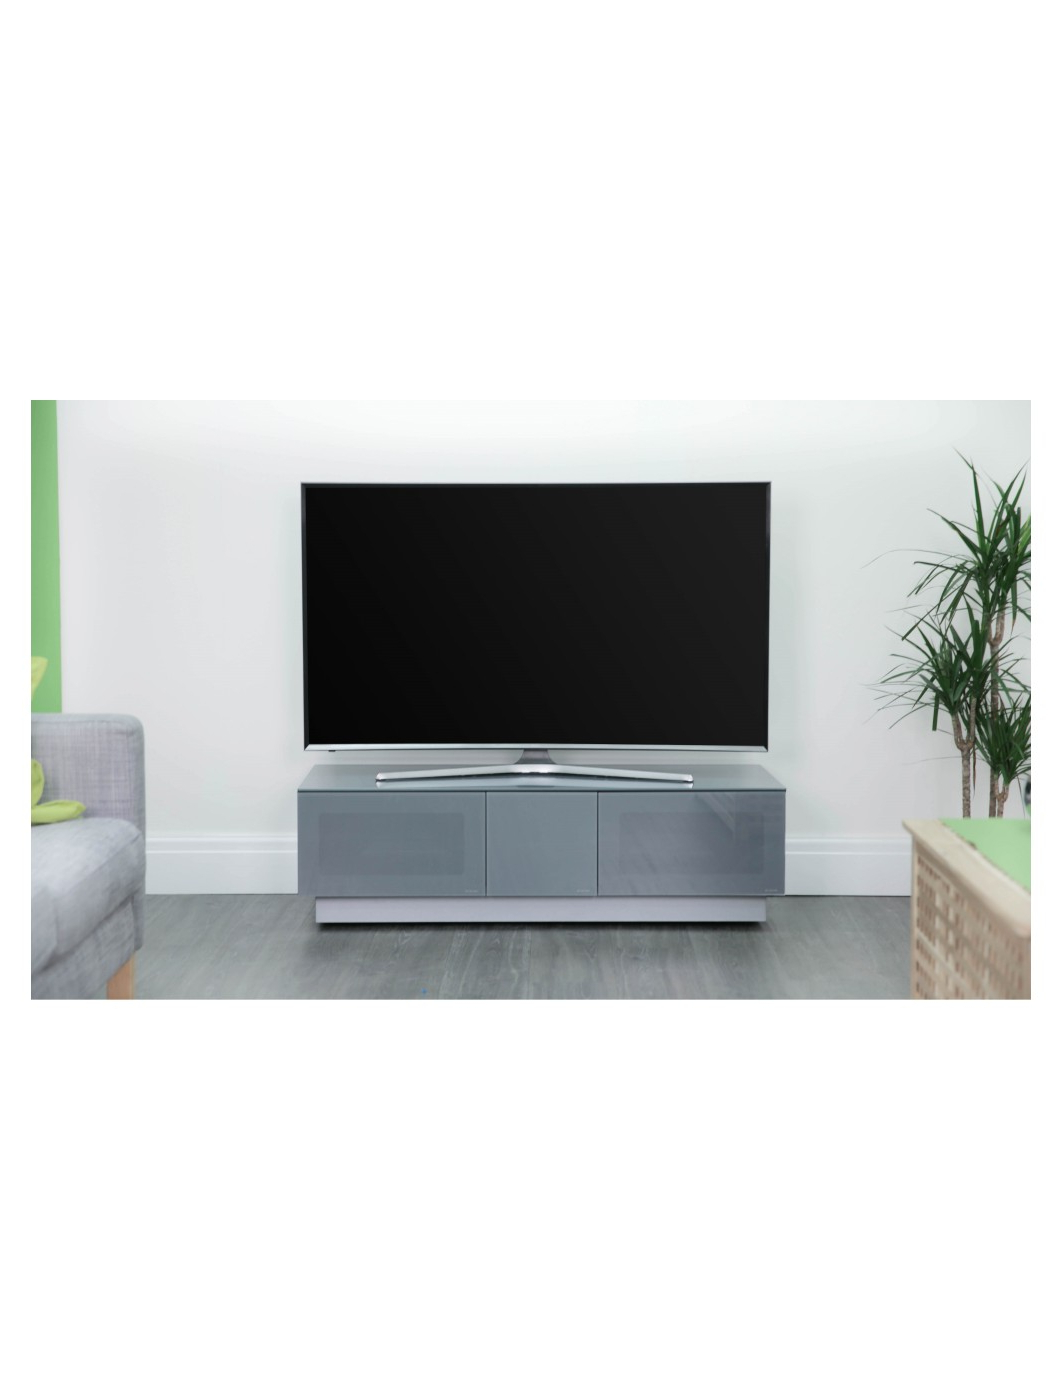 Alphason Emtmod1250 Gry Element Modular Tv Stand | 121 Tv Within 57'' Tv Stands With Open Glass Shelves Gray & Black Finsh (View 4 of 20)